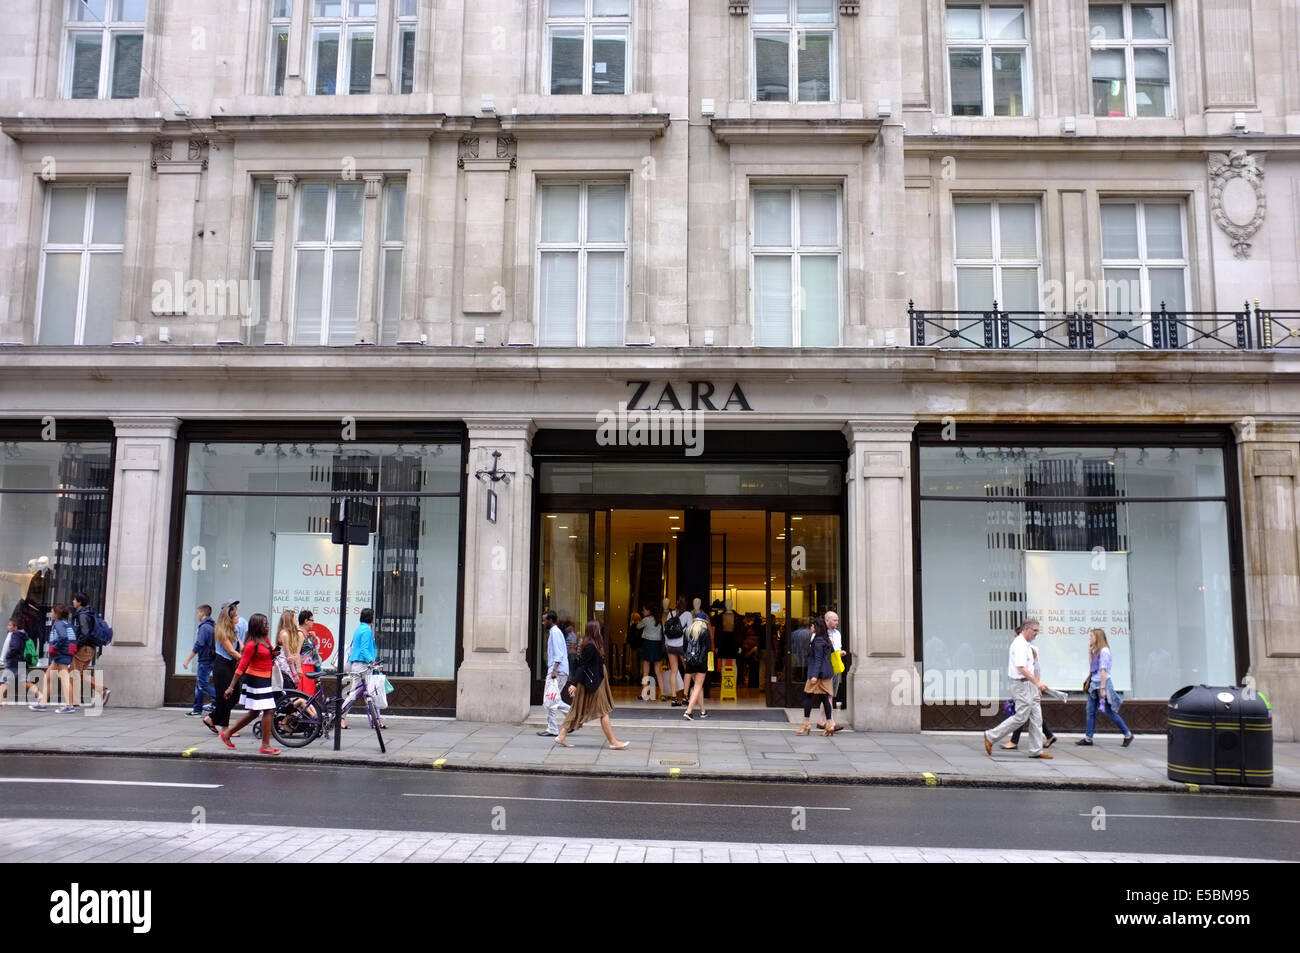 zara store on regent street london stock photo 72172161. Black Bedroom Furniture Sets. Home Design Ideas